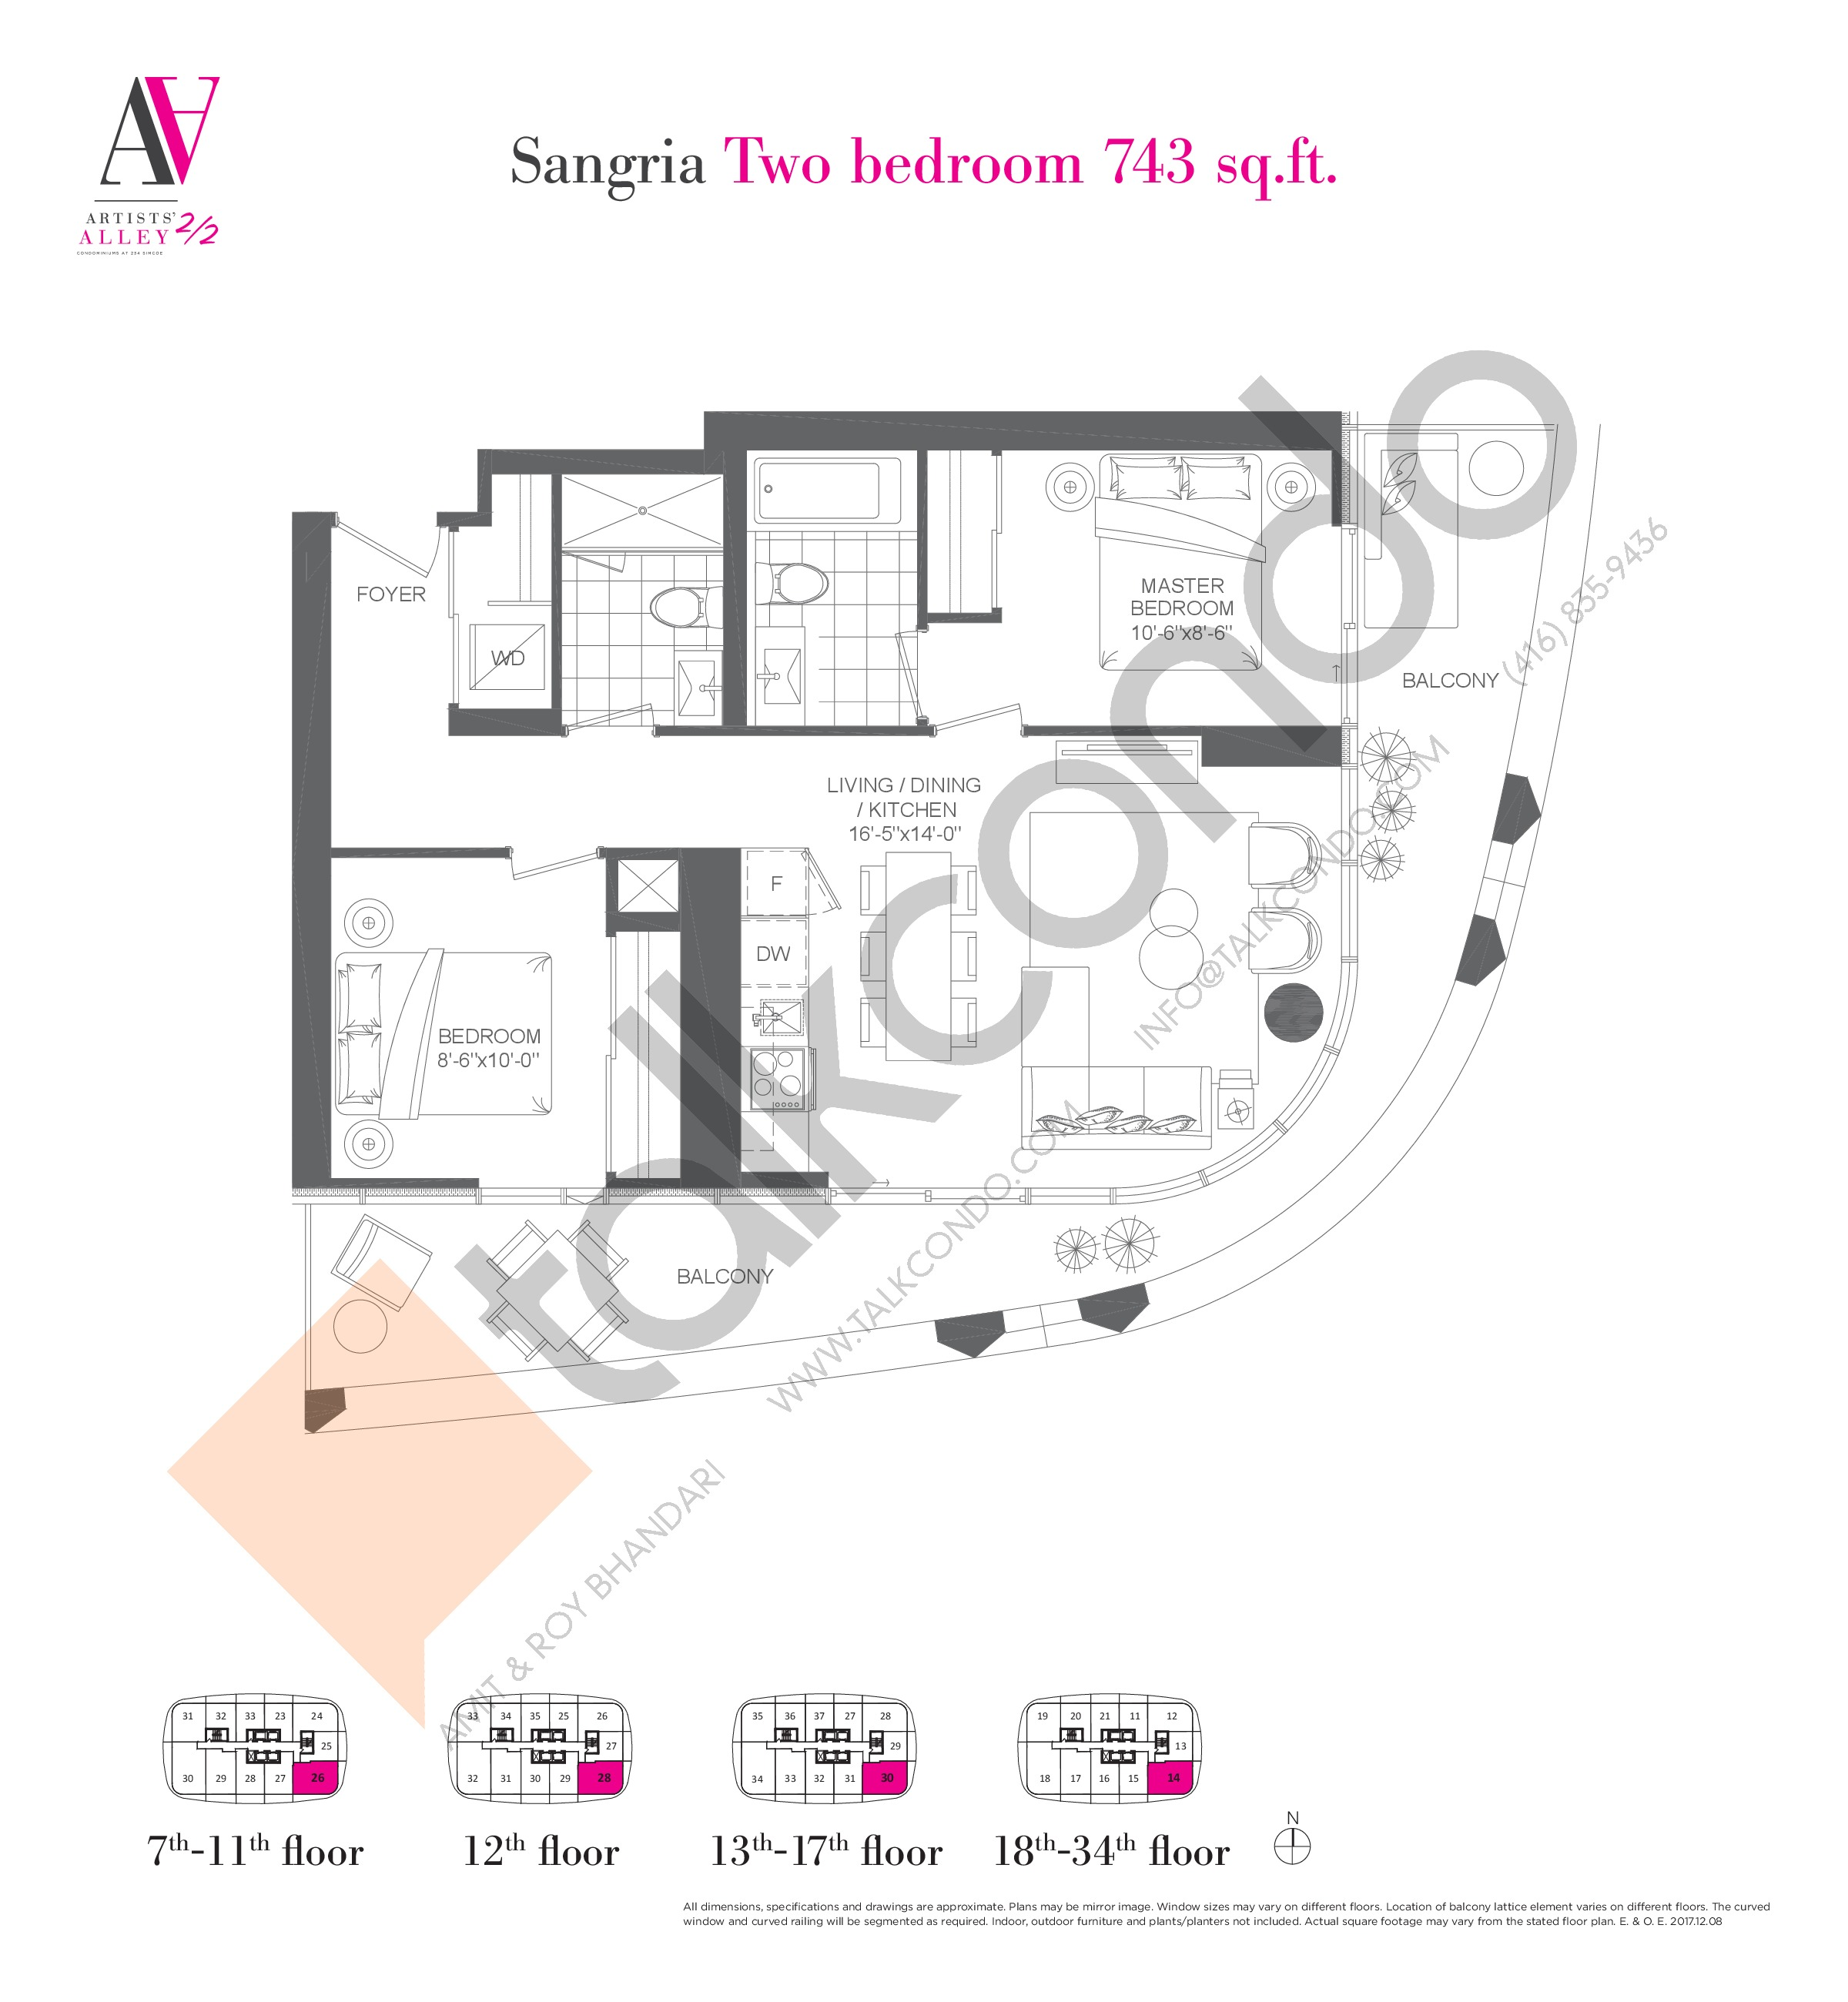 Sangria Floor Plan at Artists' Alley 2 Condos - 743 sq.ft